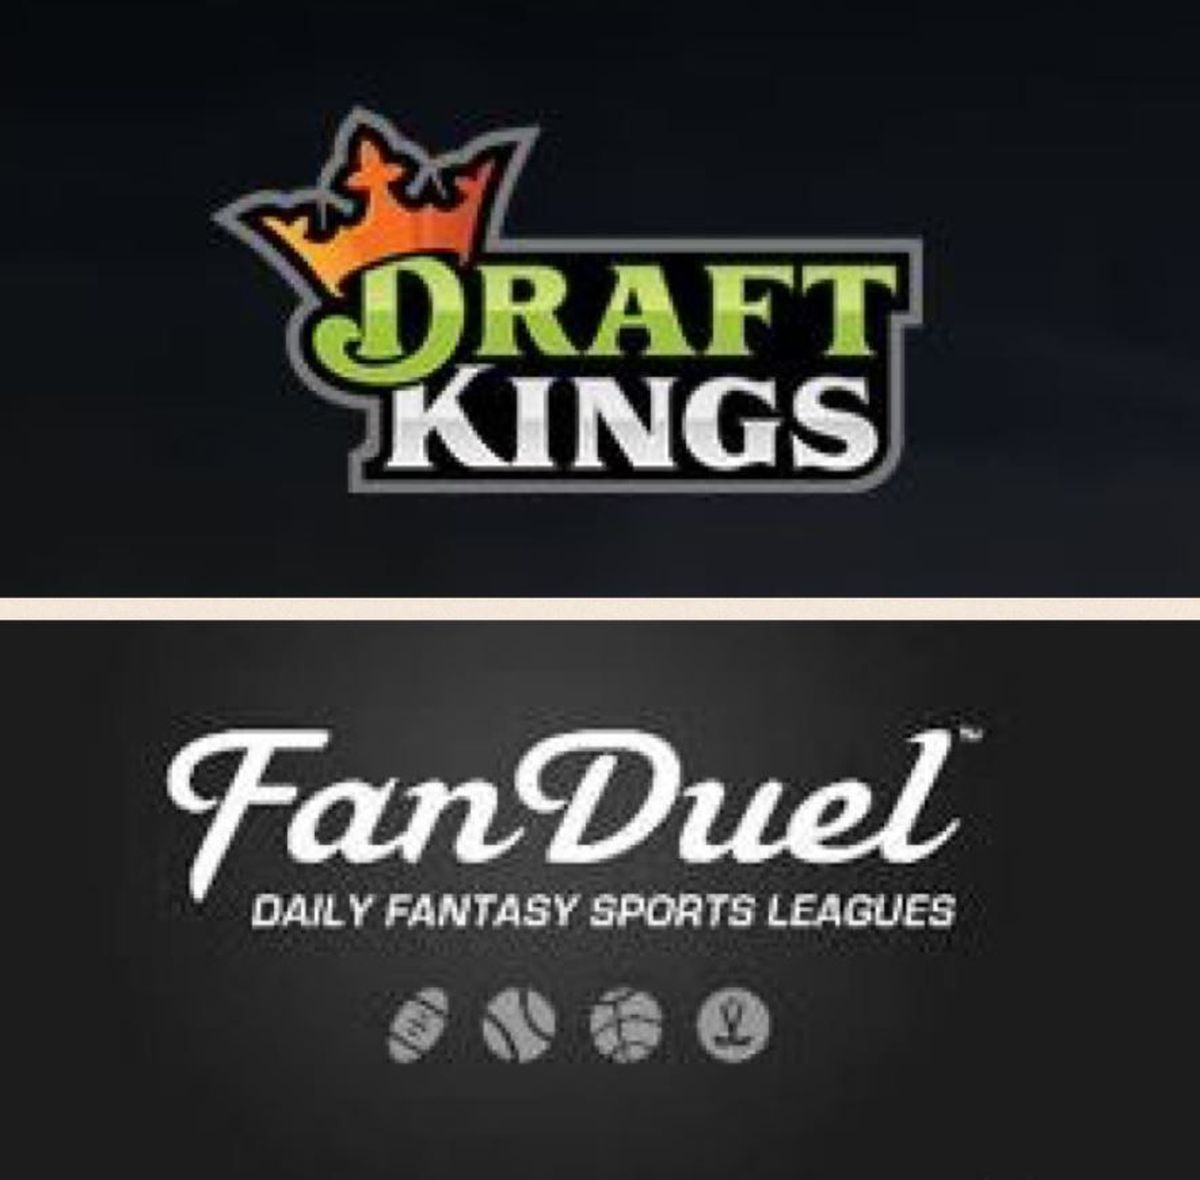 attorney general rules daily fantasy sports contests illegal in hawaii